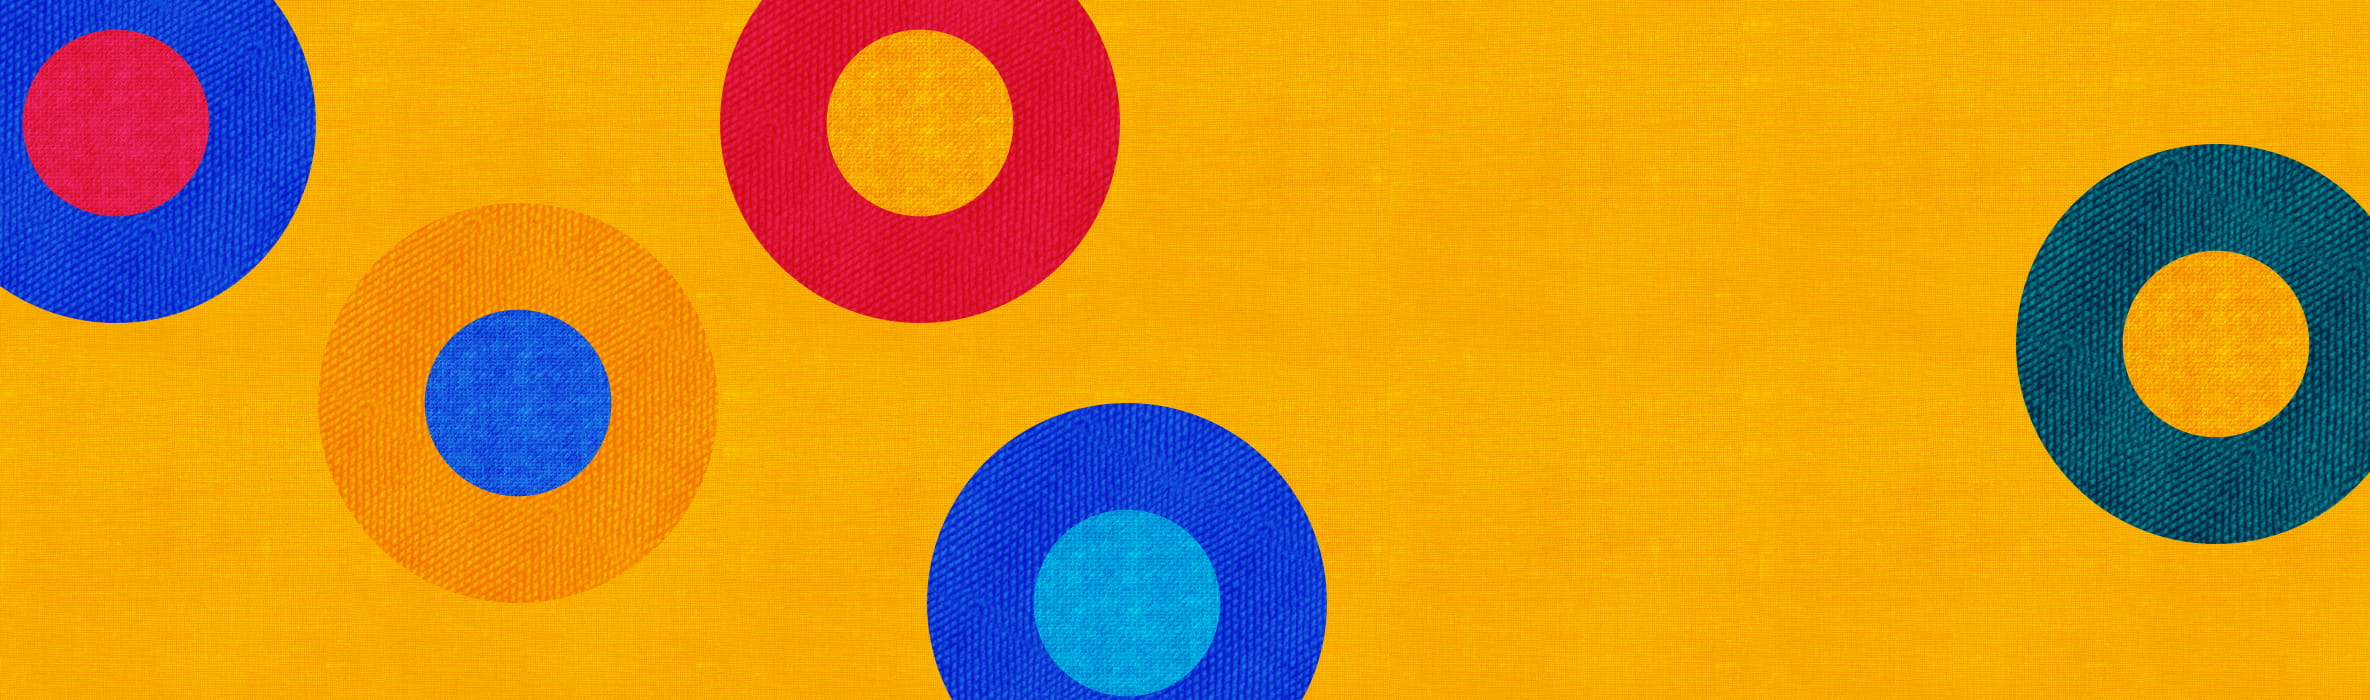 multicoloured circle on an orange background